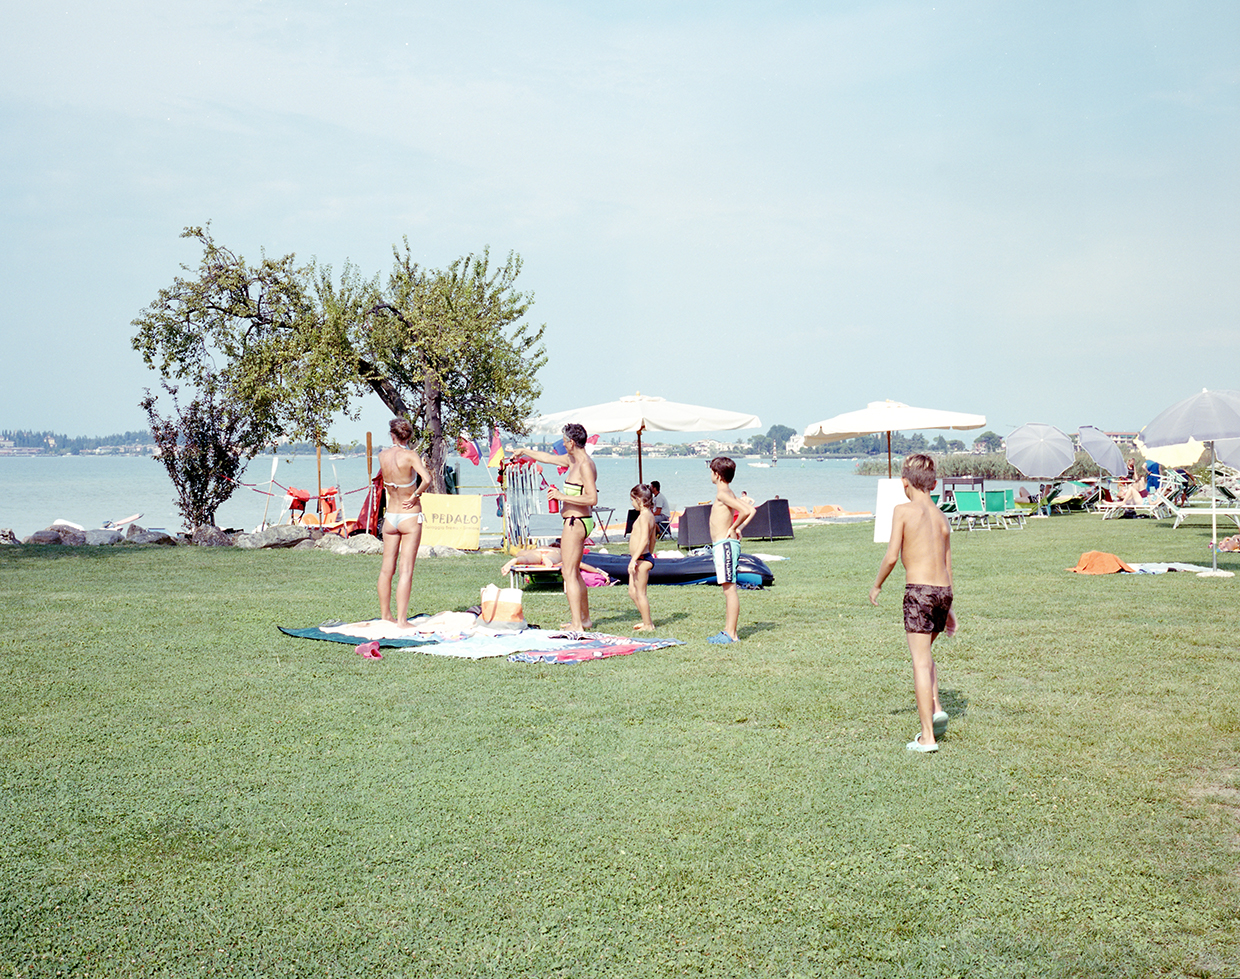 Colombare, 2017, ItalyFamilies during the last days of summer holidays on the shores of the lake in Colombare